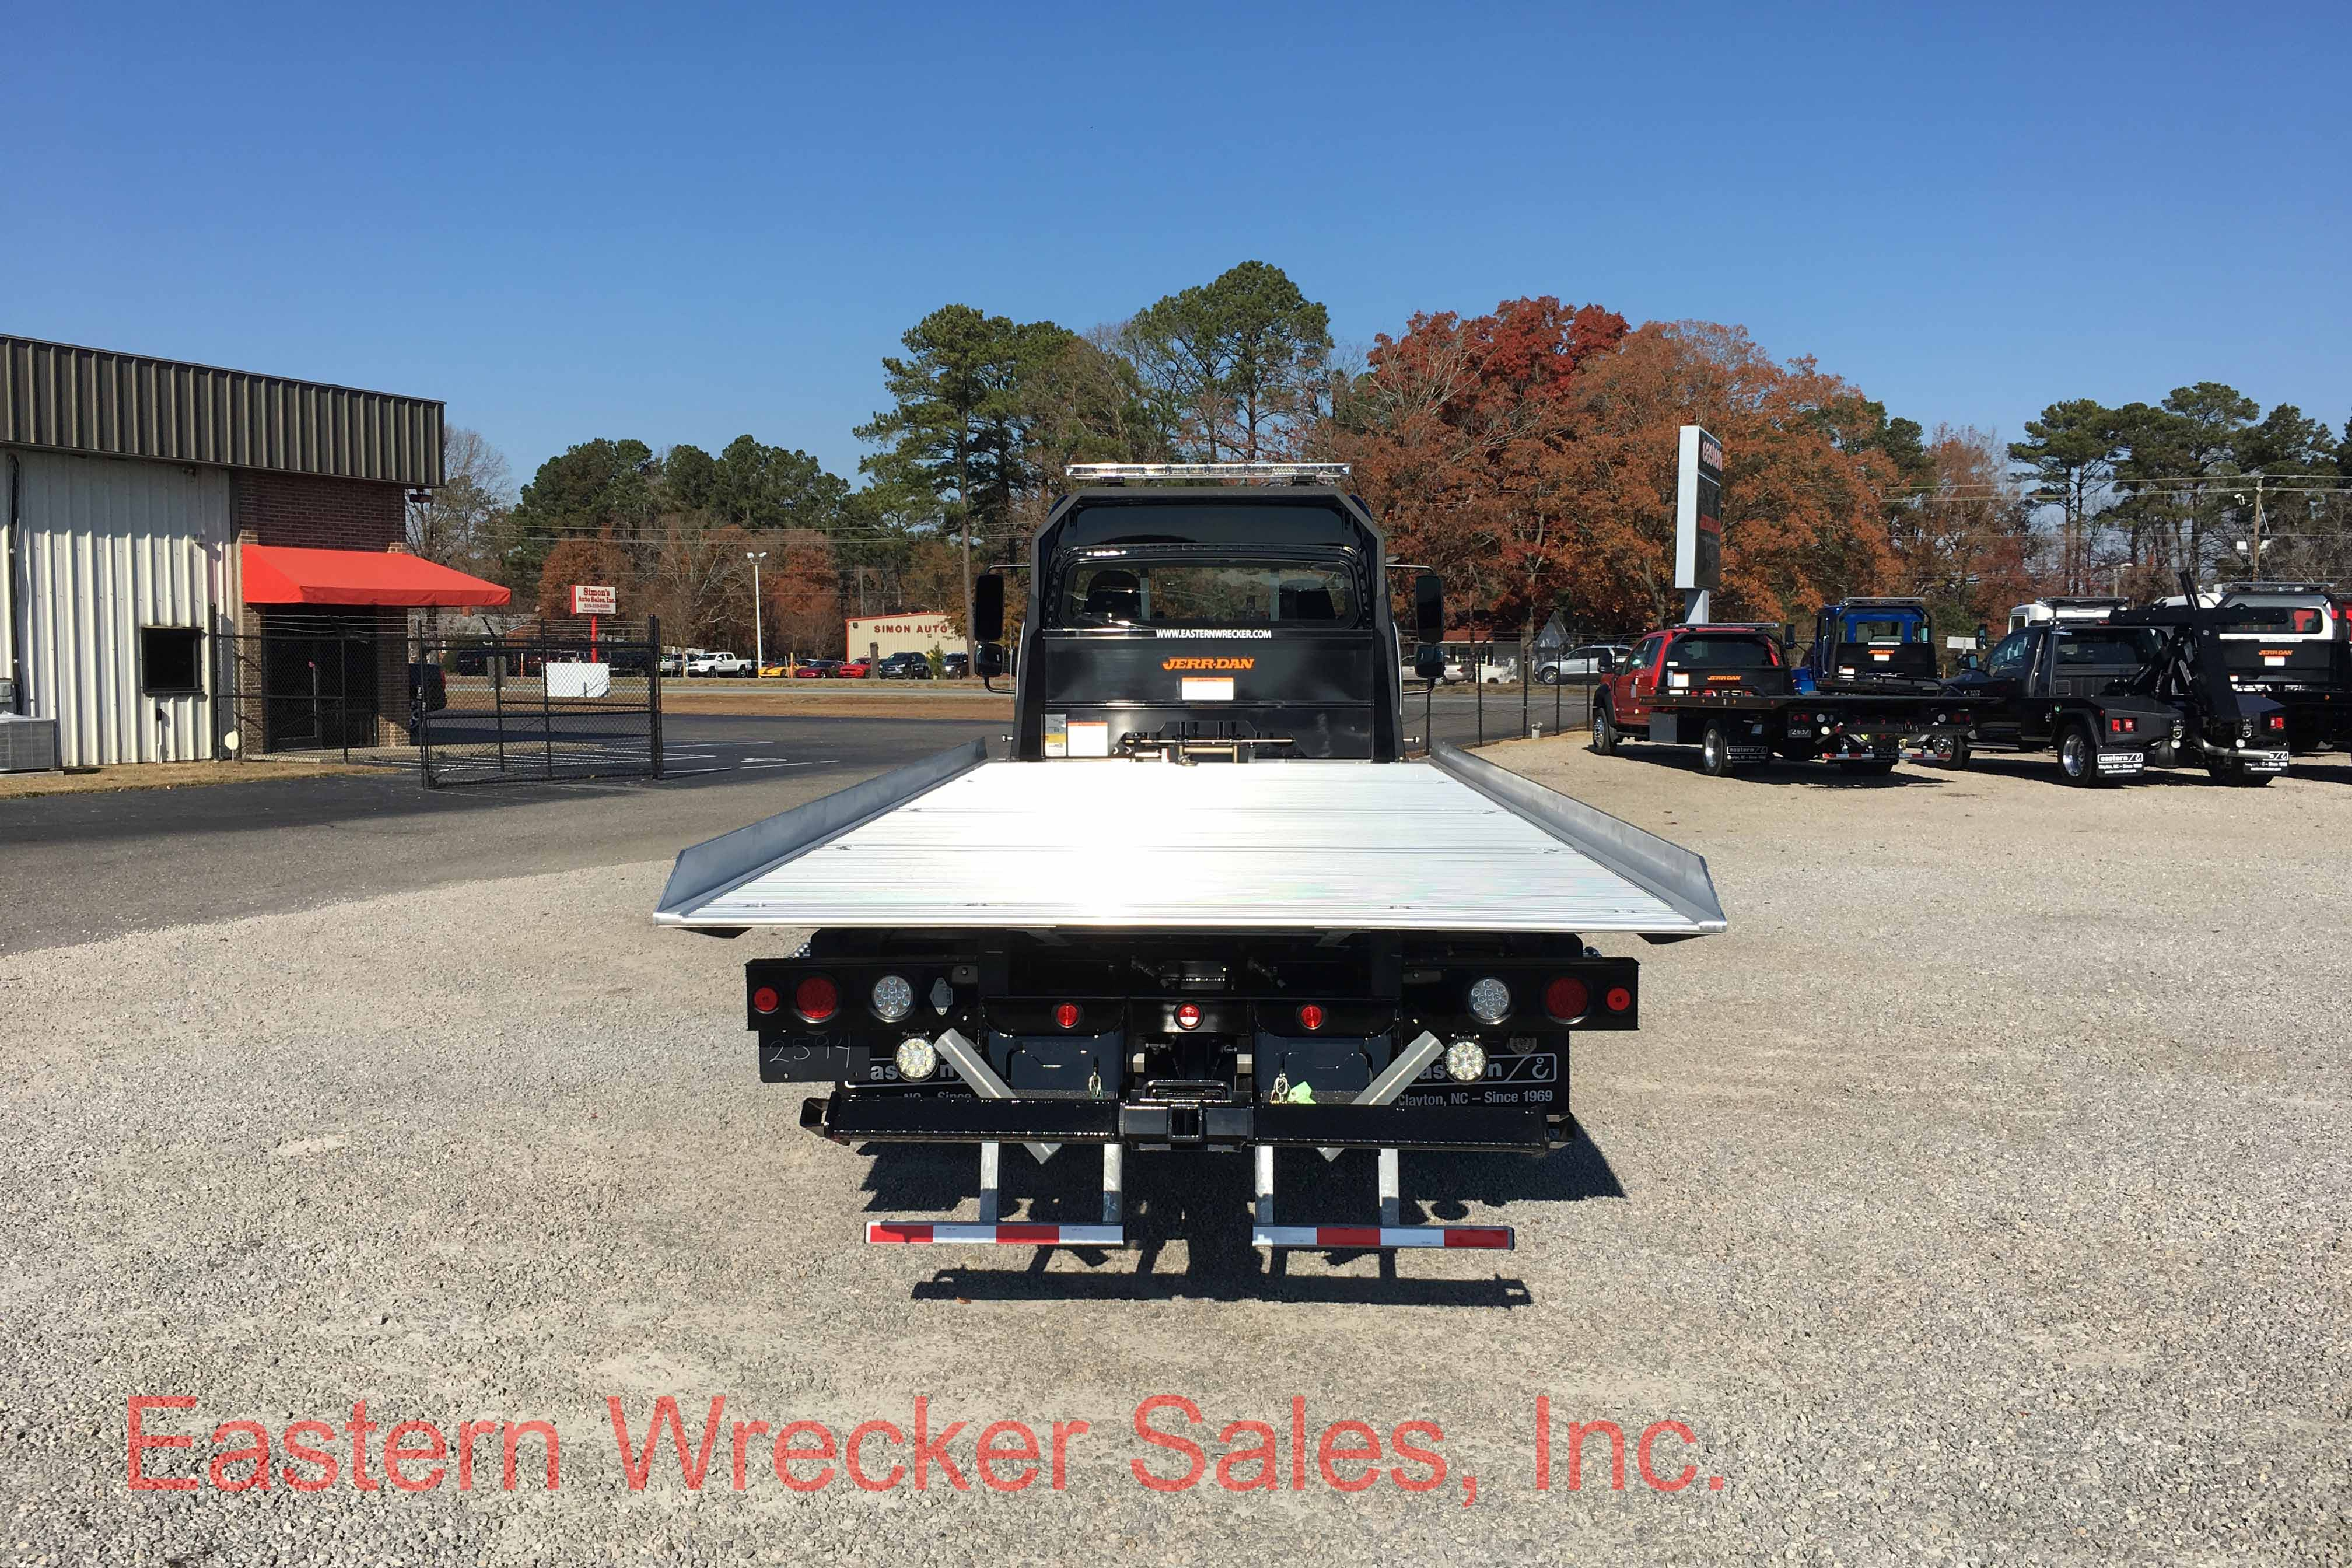 F Rear Freightliner Tow Truck For Sale Extended Cab Jerr Dan Aluminum Car Carrier Rollback on Used Extended Cab Rollback Wreckers Sale